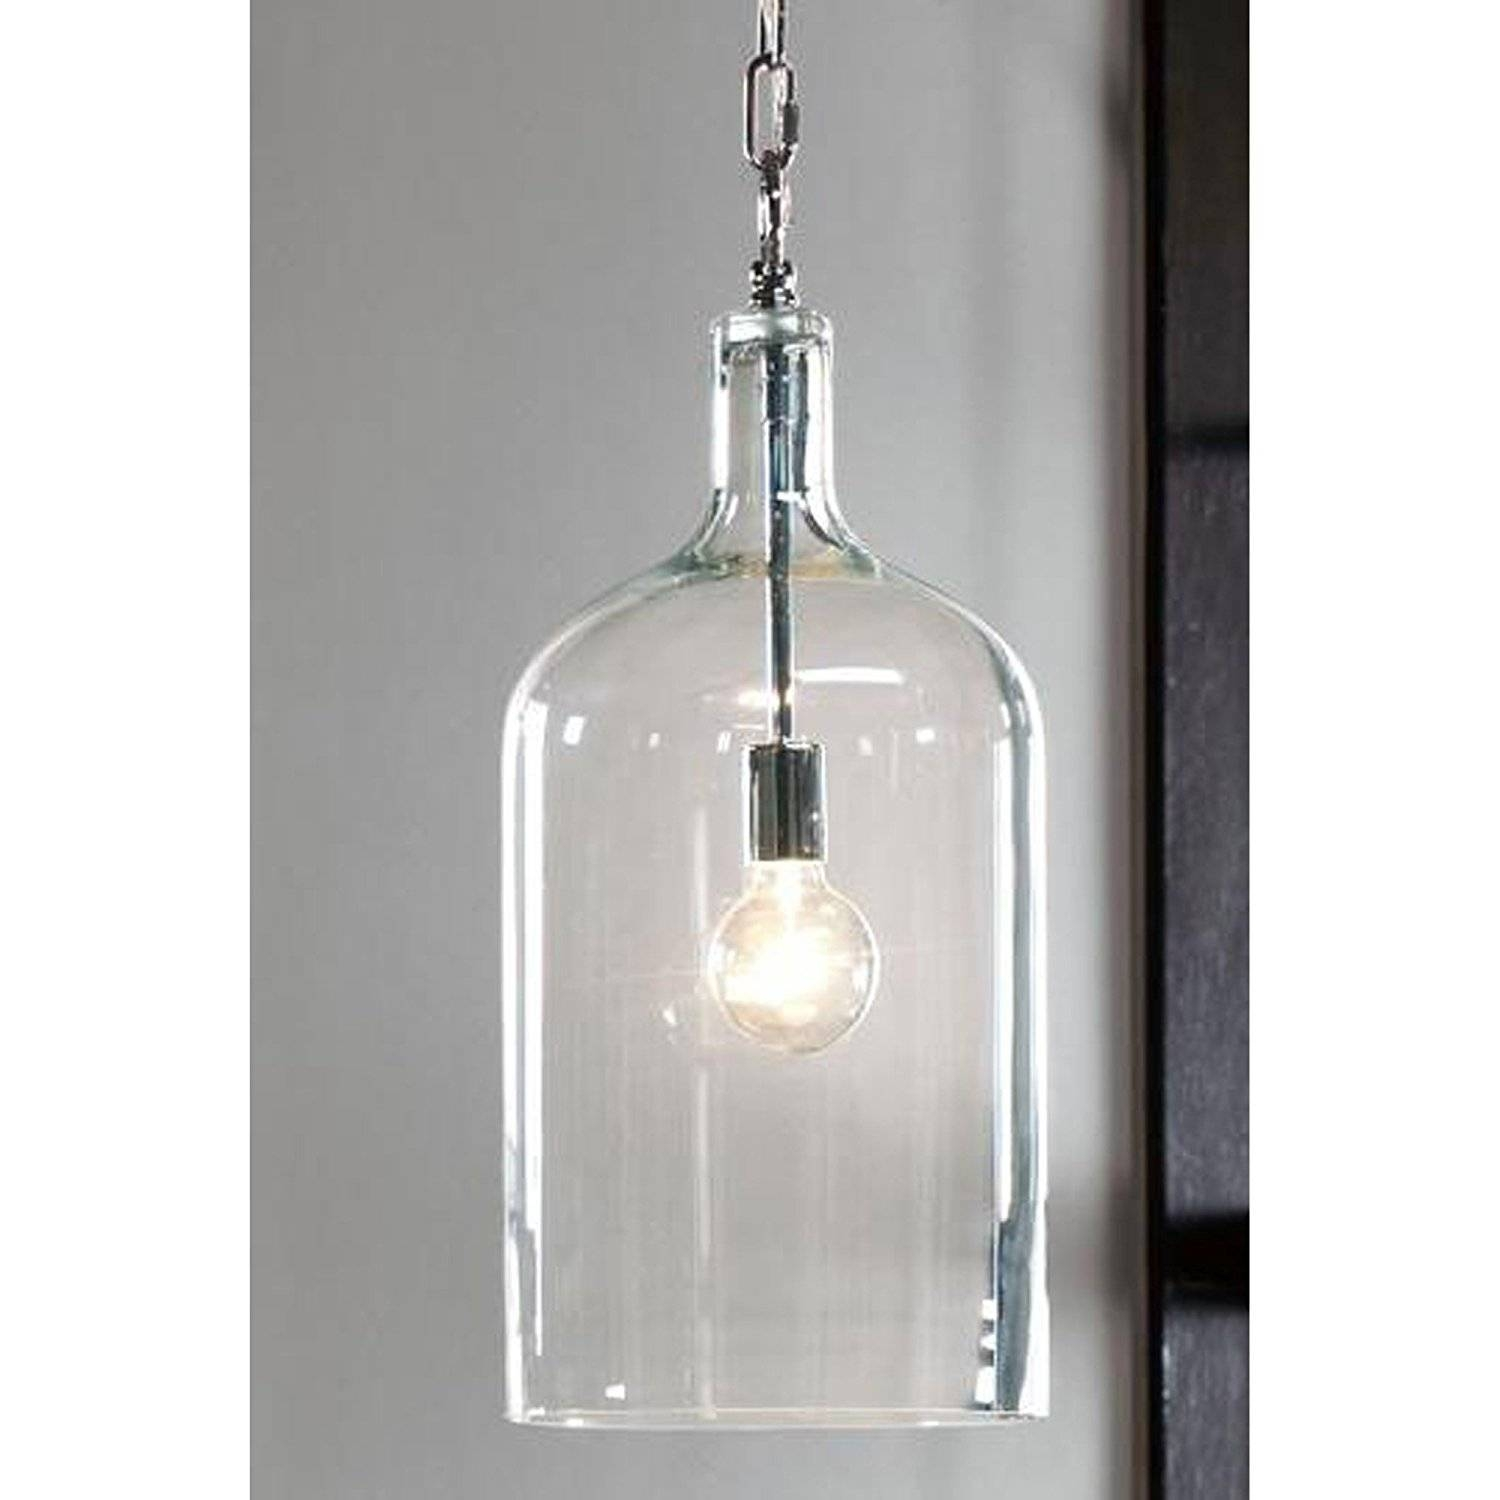 Led Pendant Lights Coloured Glass Kitchen Ceiling Stainless Steel With Gold Glass Pendant Lights (View 14 of 15)